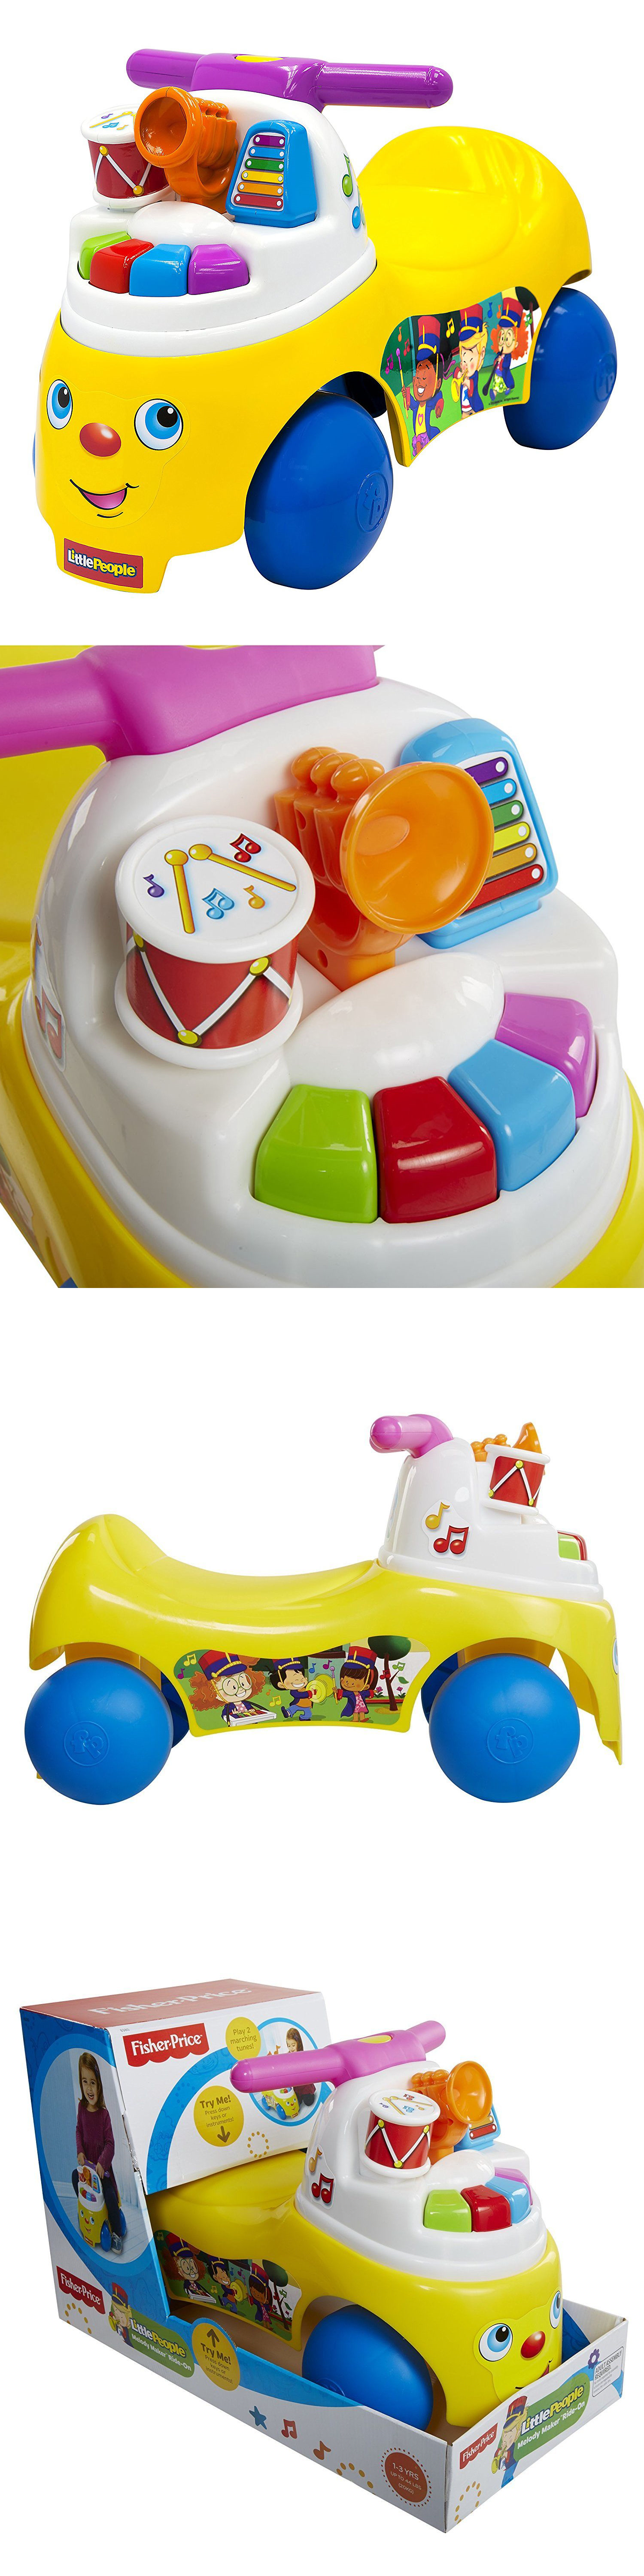 Baby toys car  baby kid stuff Baby Toddler Ride On Musical Push Car Activity